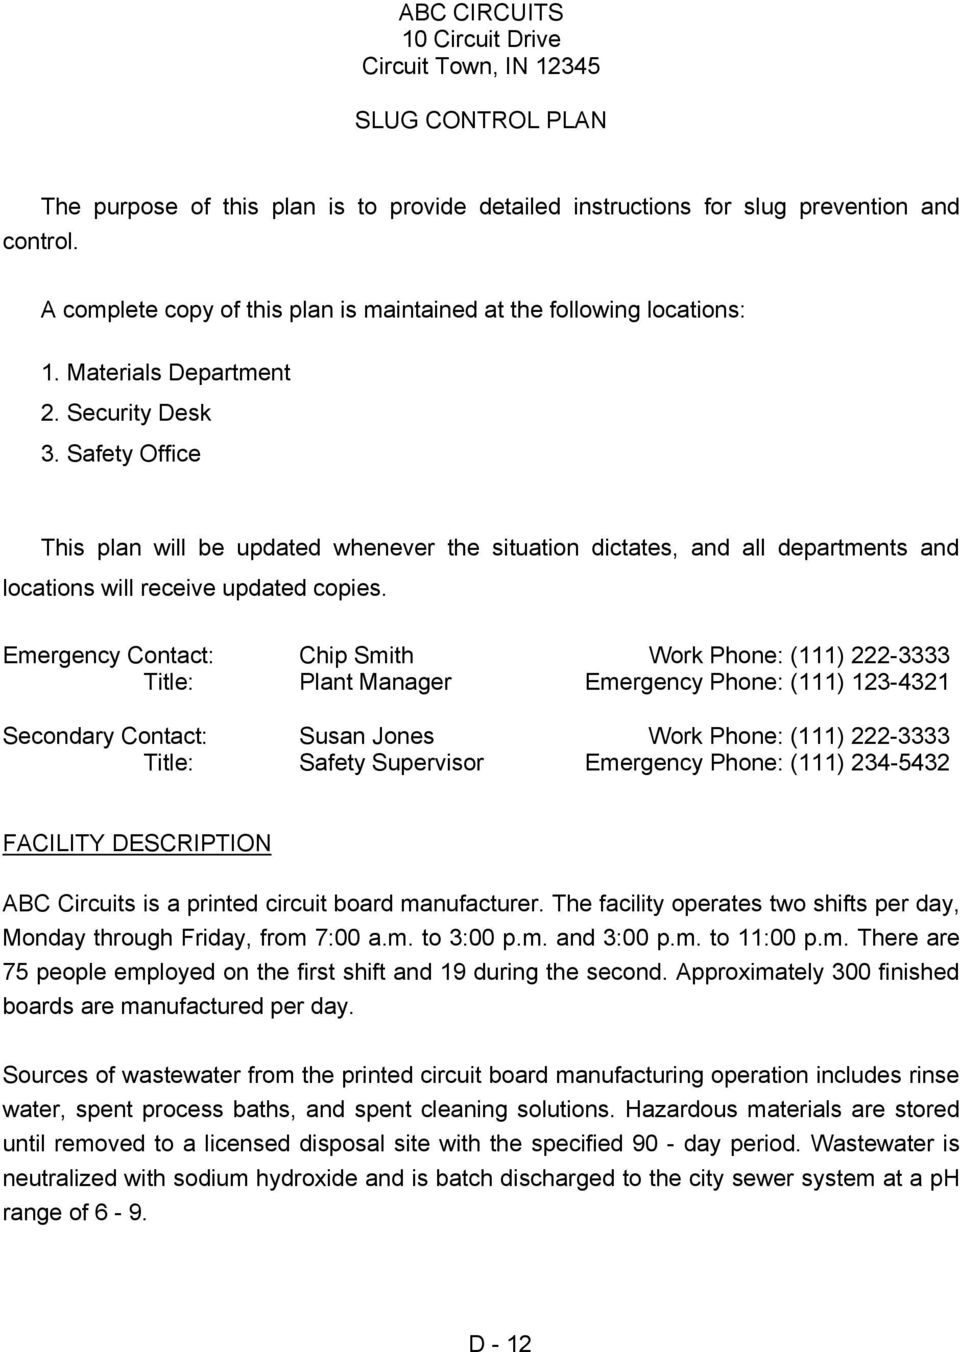 Safety Office This plan will be updated whenever the situation dictates, and all departments and locations will receive updated copies.